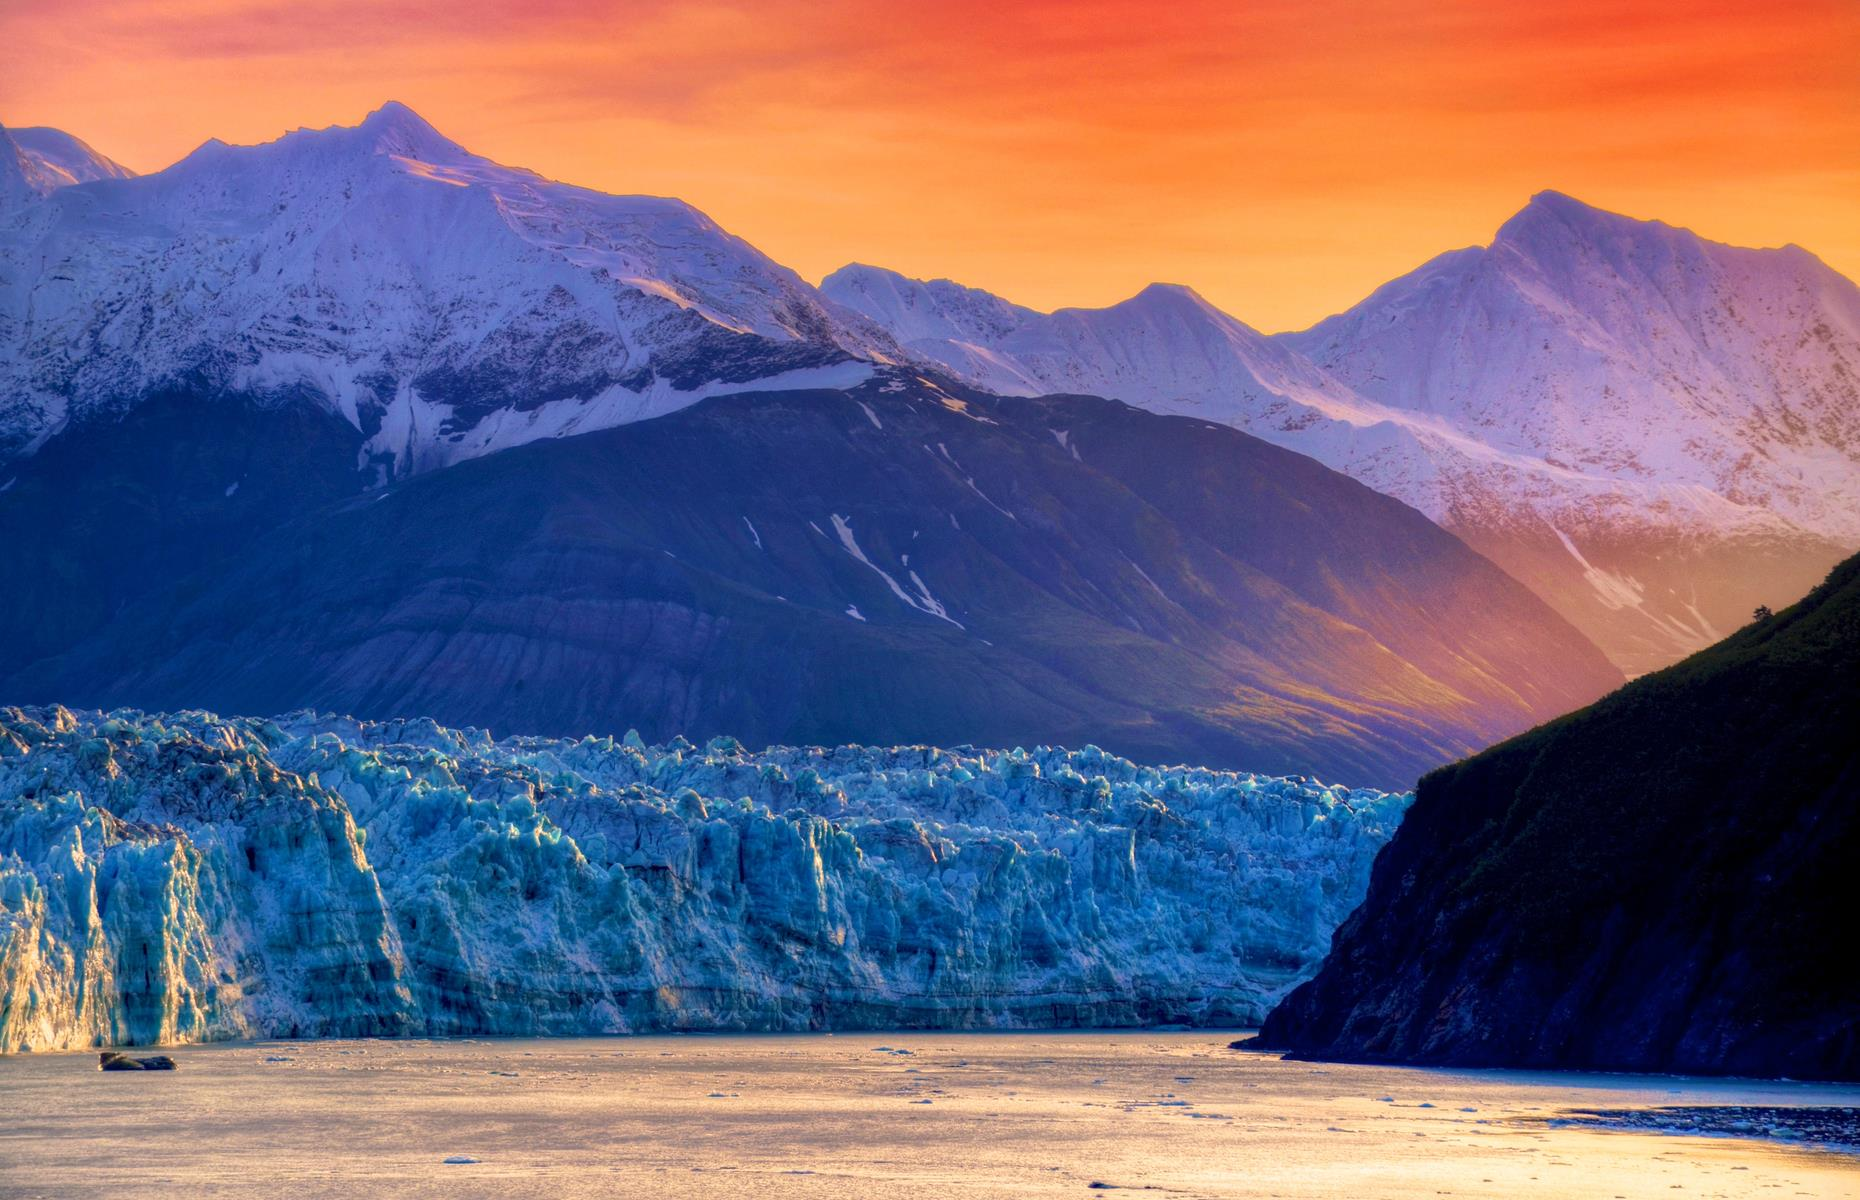 Slide 3 of 51: The gigantic Hubbard Glacier in Wrangell-St. Elias National Park is more than seven-miles (11km) wide, 76-miles (122km) long and reaches a height of 600 feet (183m). So it's breathtaking at any time of day. At the break of dawn, however, a backdrop of blazing tangerine makes it even more majestic. The thunderous roar of ice chunks calving from the glacier and plunging into the frigid waters below adds to the drama.